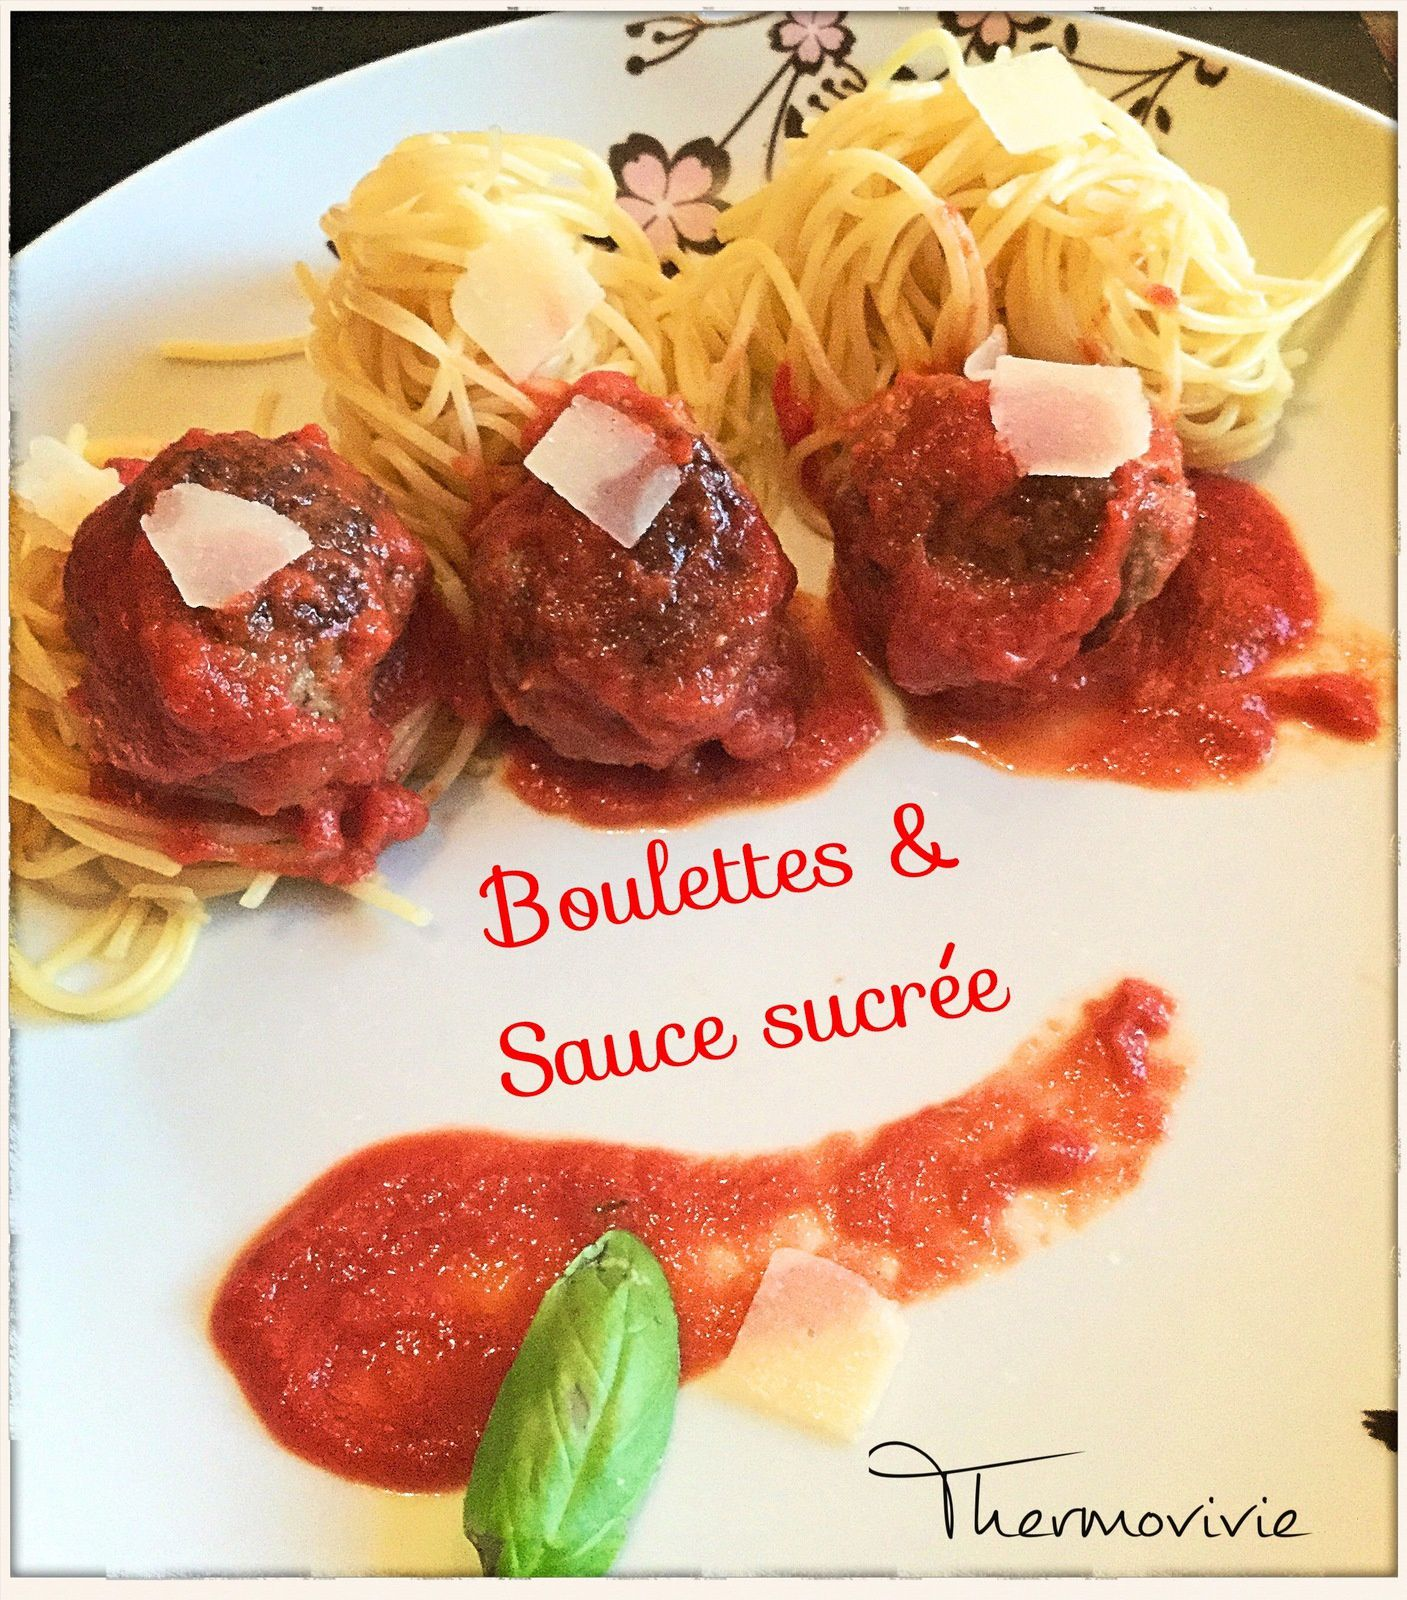 boulettes de b uf et sa sauce tomate sucr e recette au cook expert de magimix thermovivie. Black Bedroom Furniture Sets. Home Design Ideas